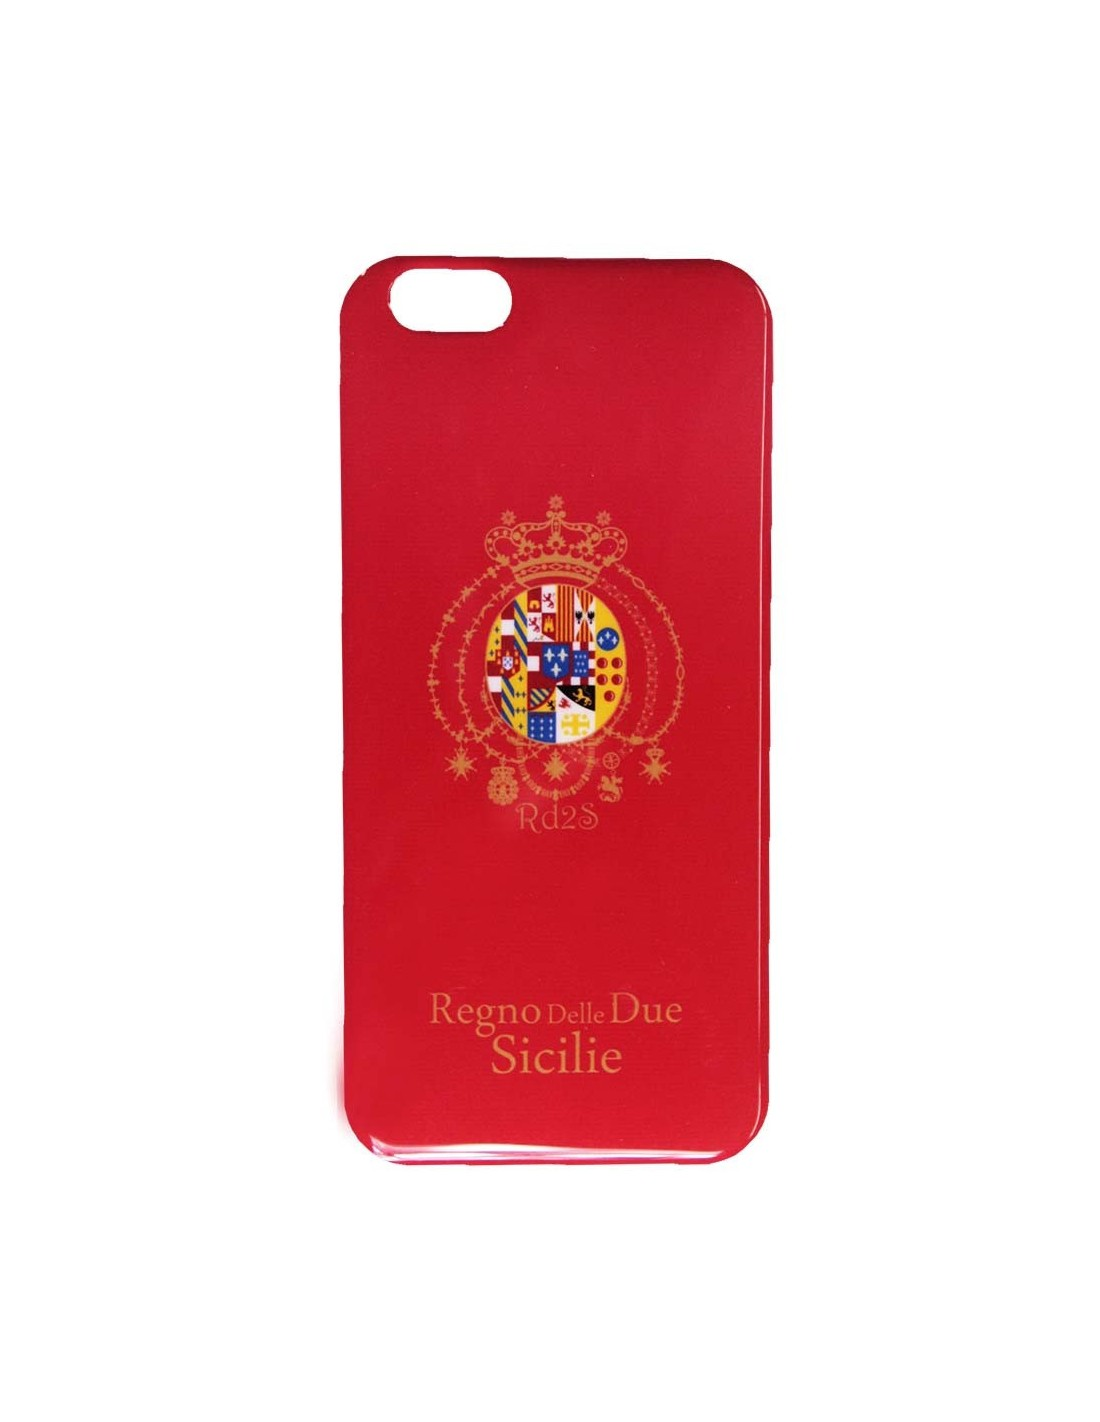 SSC NAPOLI RED COVER BADGE BOURBON FOR IPHONE 5 / 5S 6 6 PLUS GALAXY S4 S5 S6 S6 EDGE